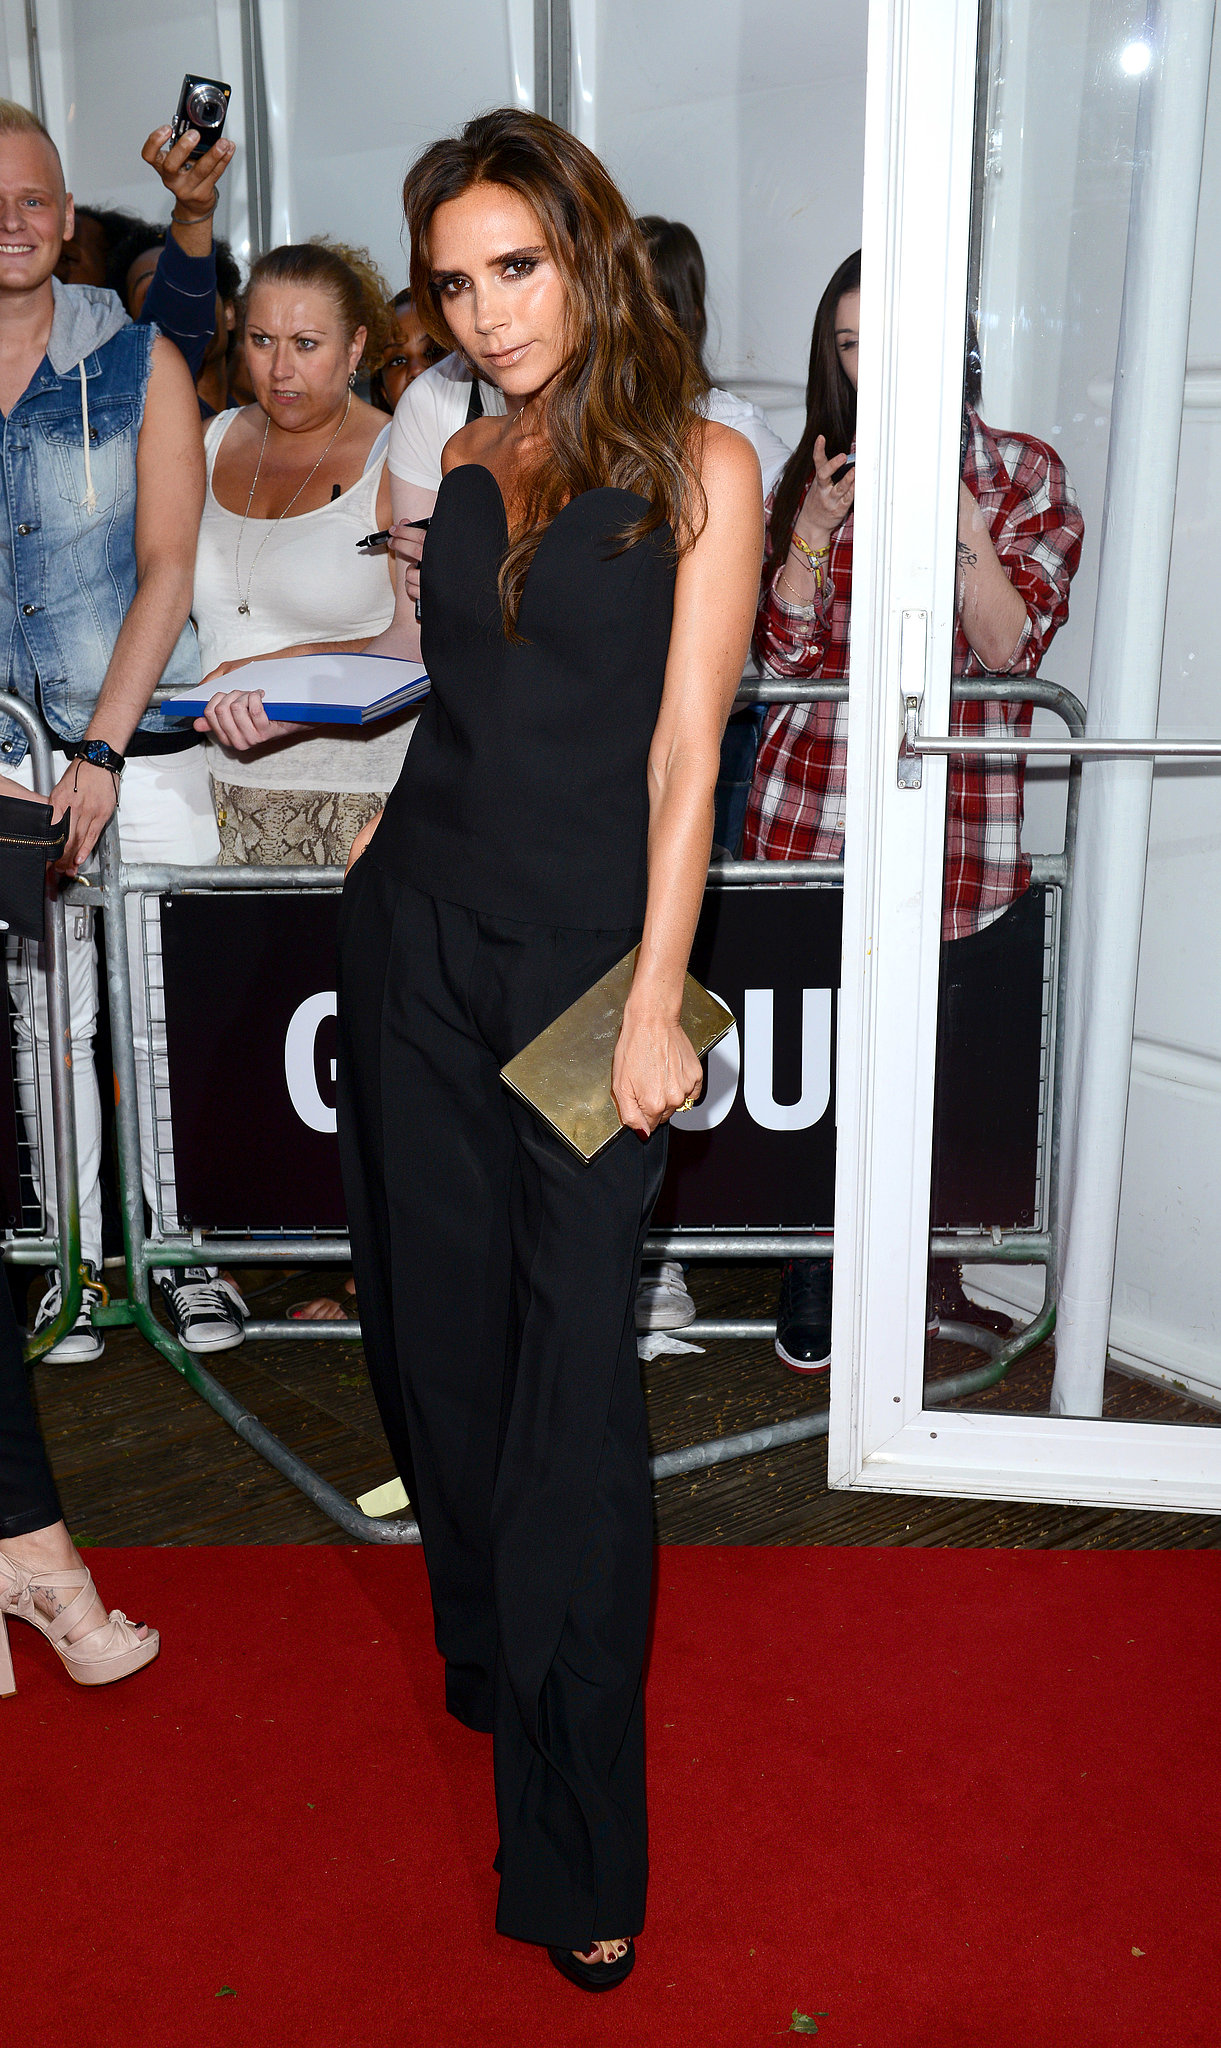 Victoria Beckham at the 2013 Glamour Women of the Year